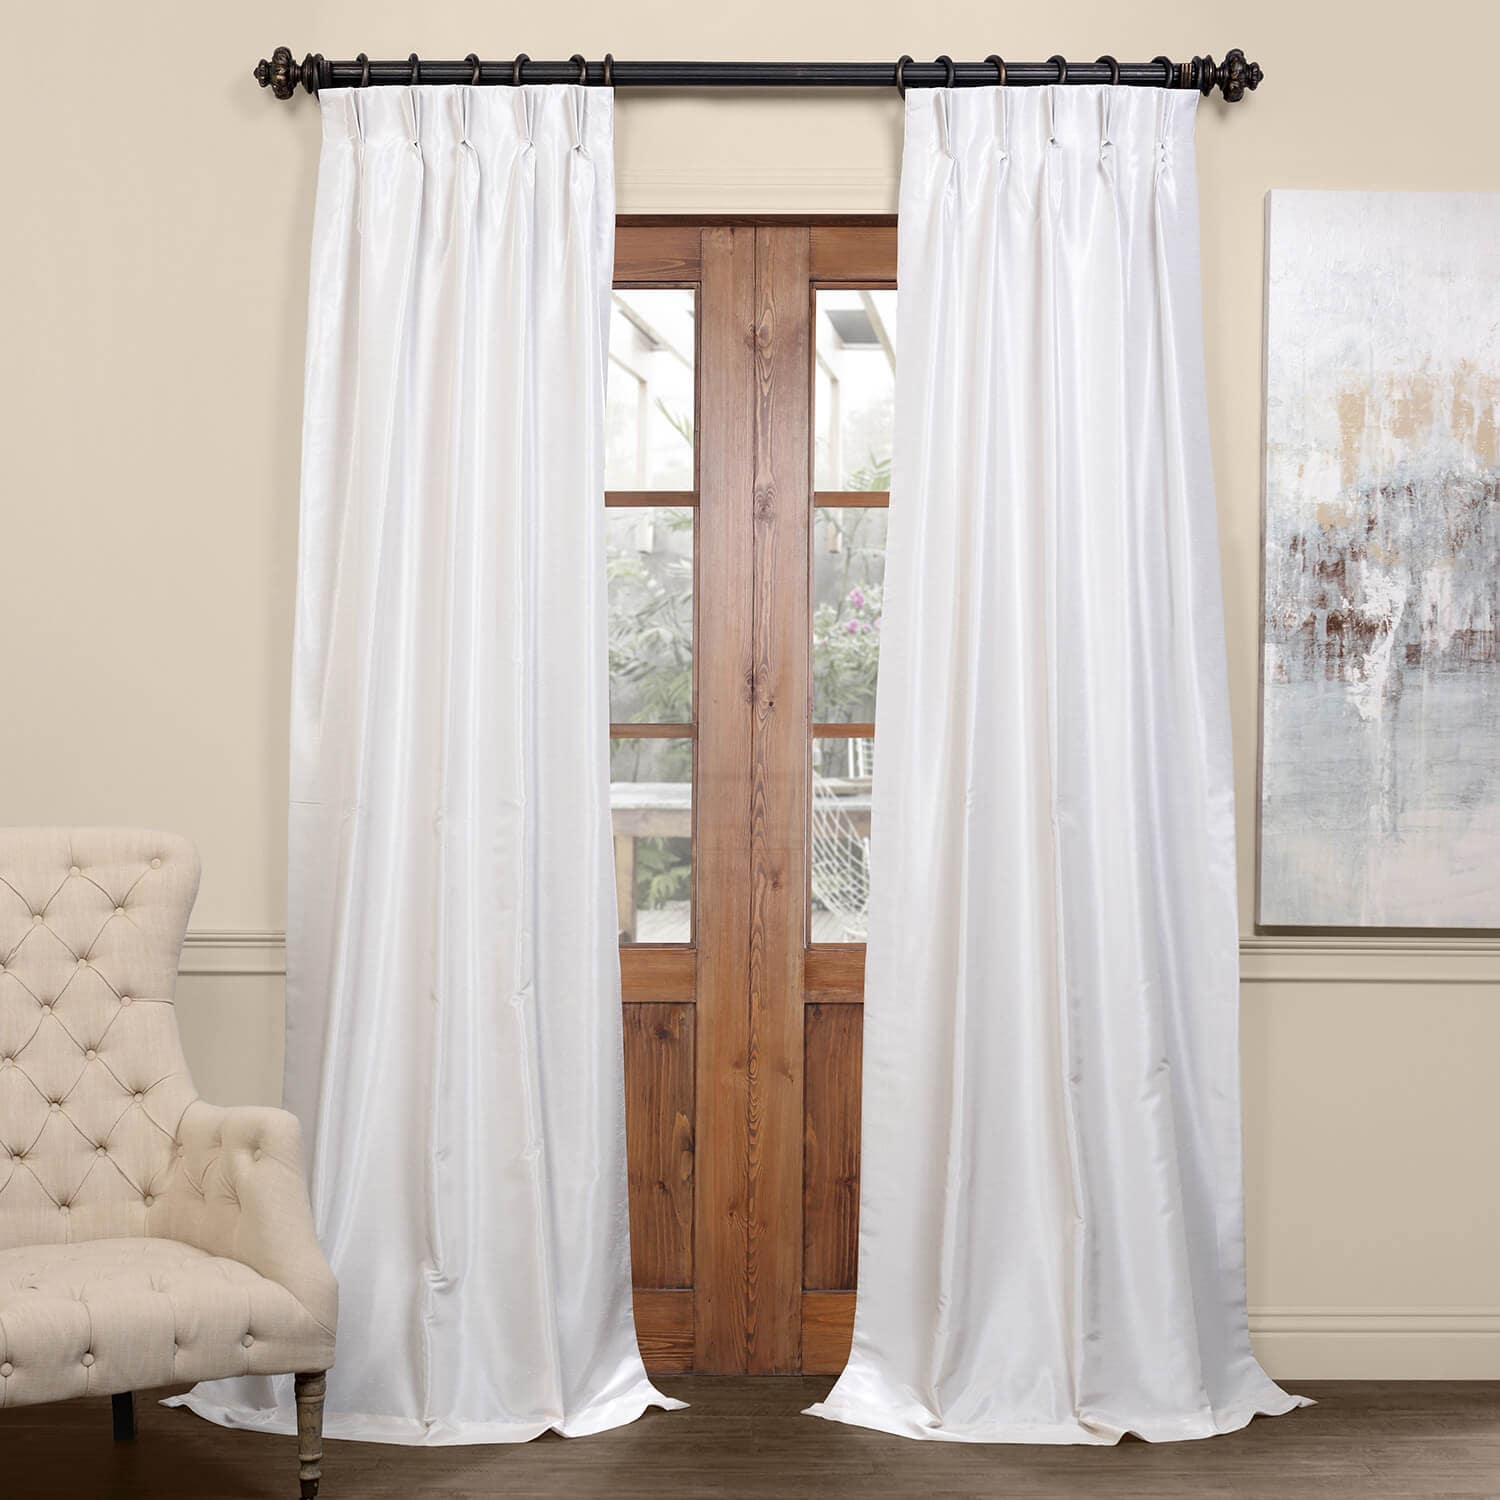 Off White Blackout Vintage Textured Faux Dupioni Pleated Curtain Pertaining To Vintage Faux Textured Dupioni Silk Curtain Panels (View 21 of 30)